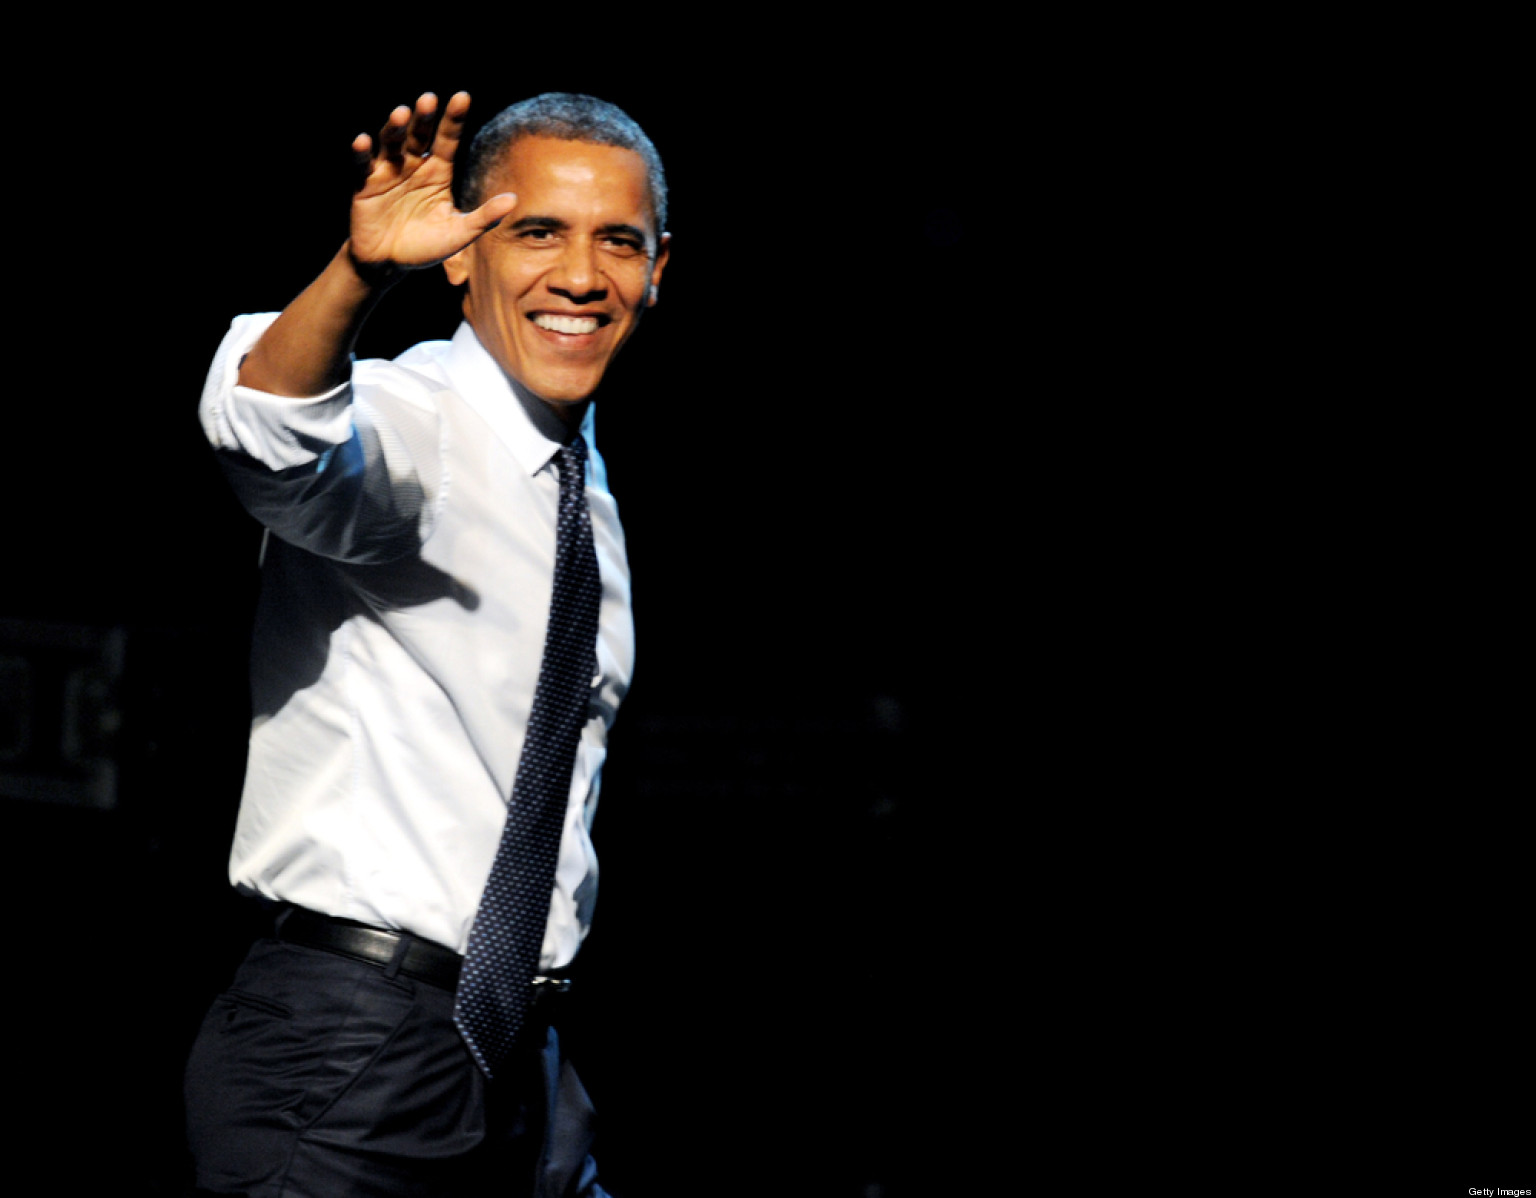 Obamas Donated Almost One Quarter Of Income To Charity